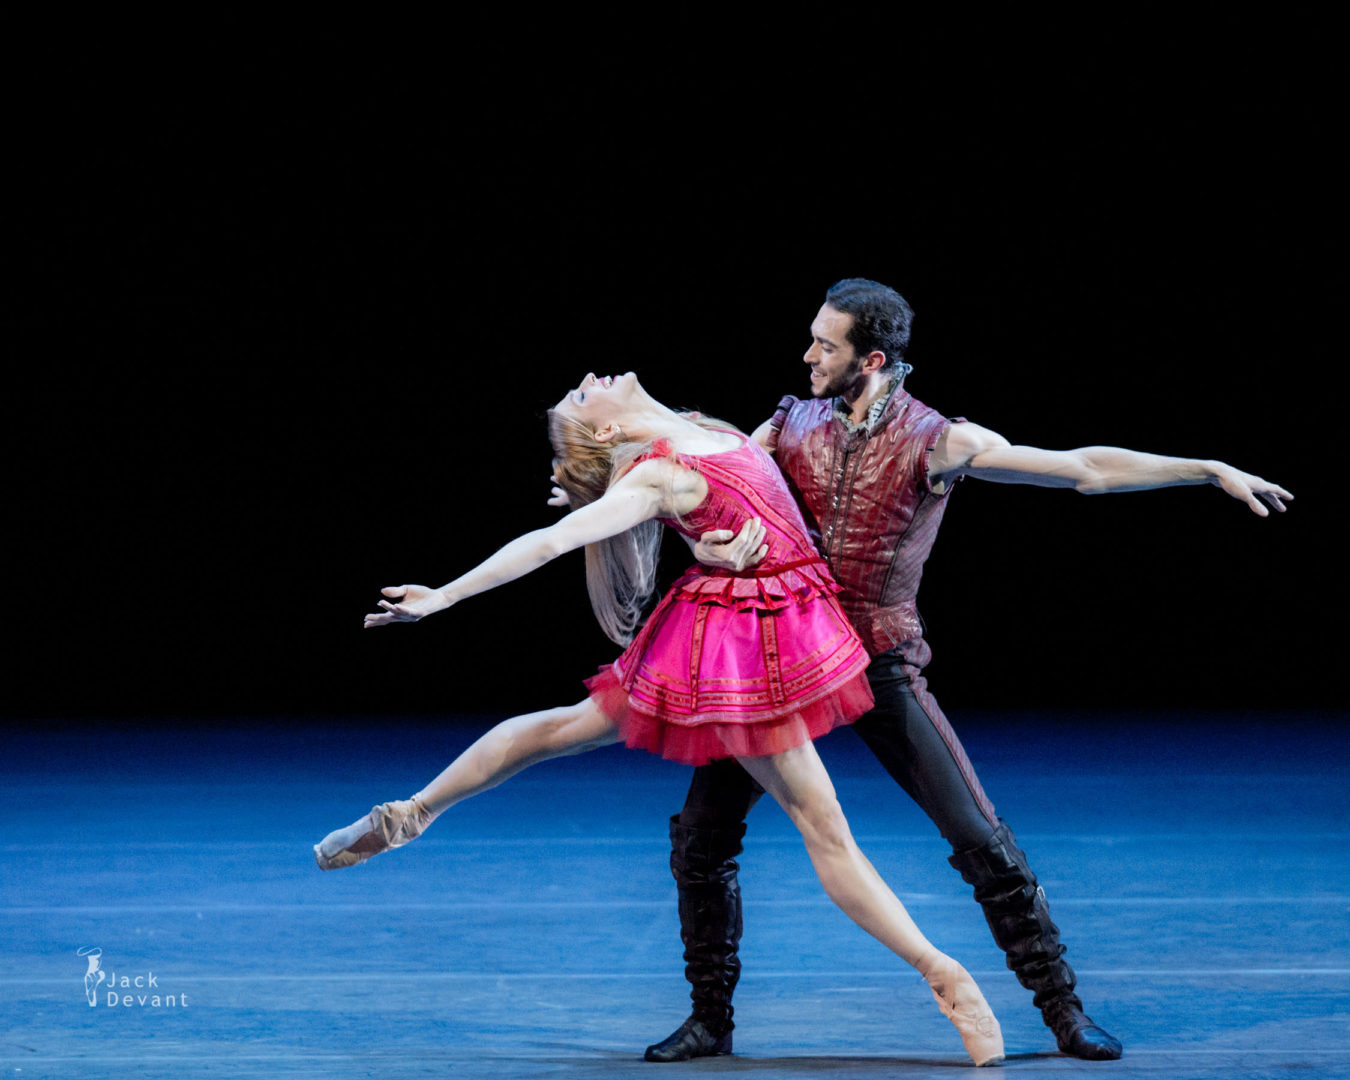 Benois de la Danse Virna Toppi and Christian Fagetti in duet from Cinderella, music by Sergei Prokofiev, choreography by Mauro Bigonzetti